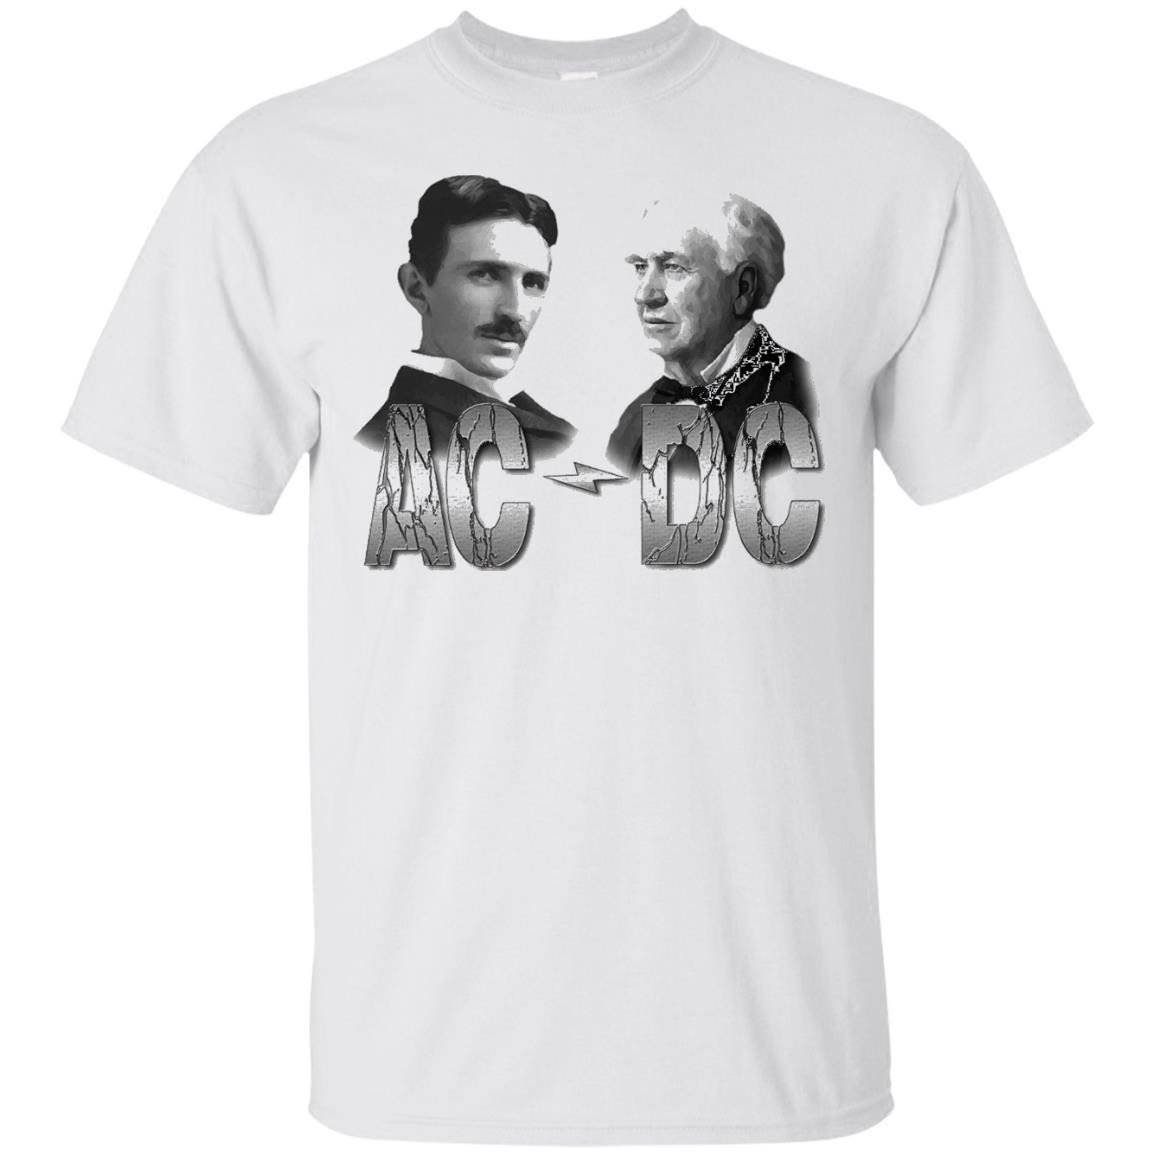 Men's TerraShirts Tesla and Edison AC DC Shirt – T-Shirt